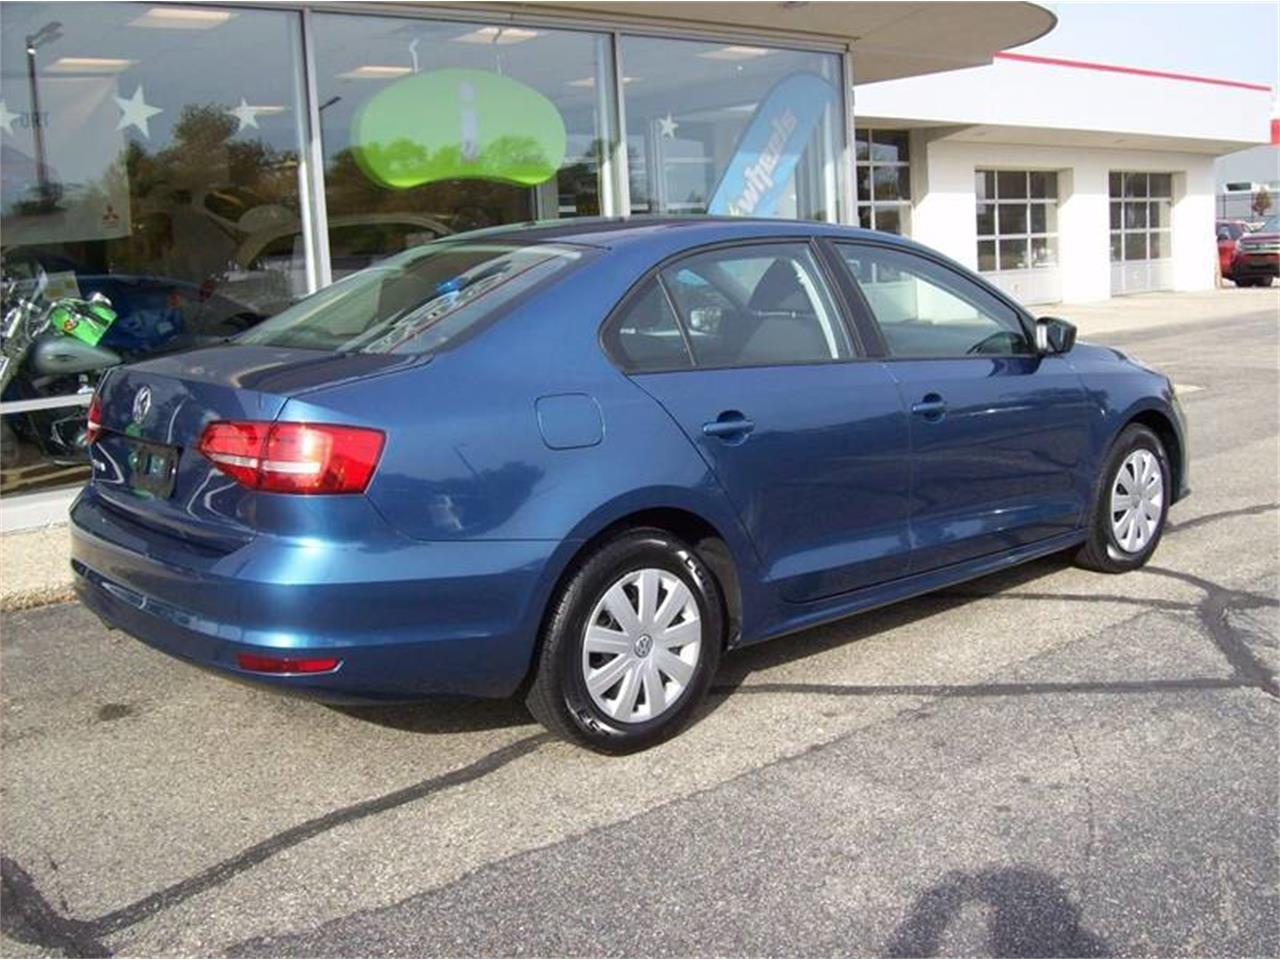 Large Picture of '15 Volkswagen Jetta located in Holland Michigan - $10,995.00 Offered by Verhage Mitsubishi - M6XO